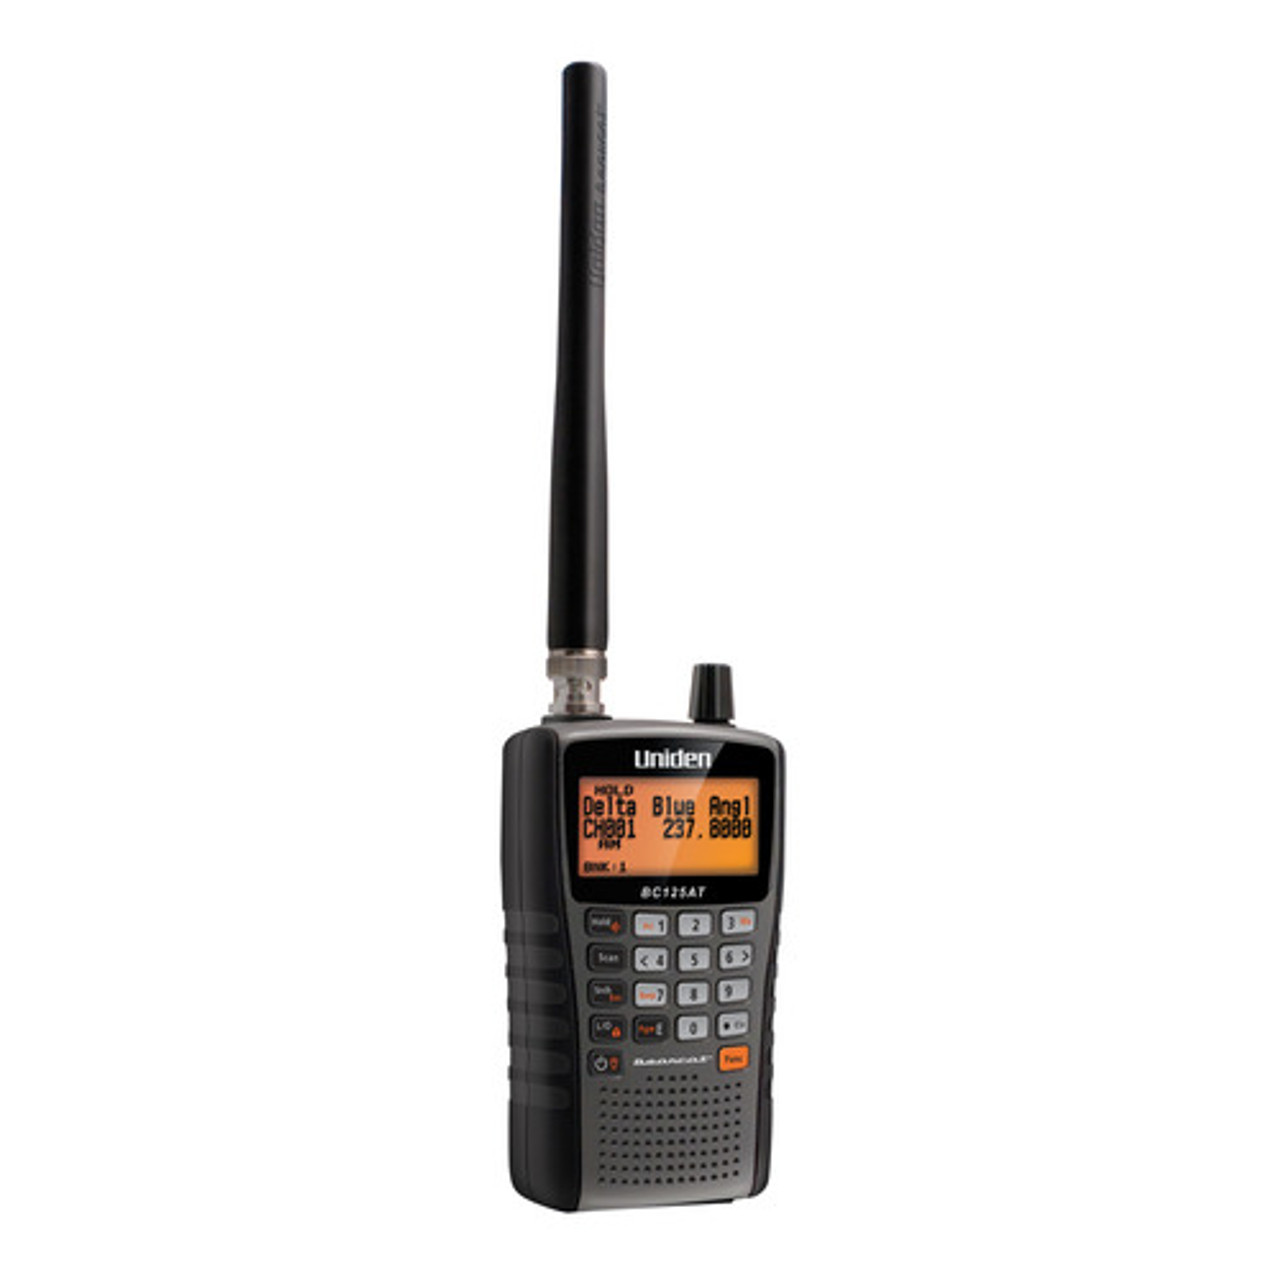 Uniden BC125AT - 500 Alpha Tagged Channel Handheld Scanner - OUT OF STOCK